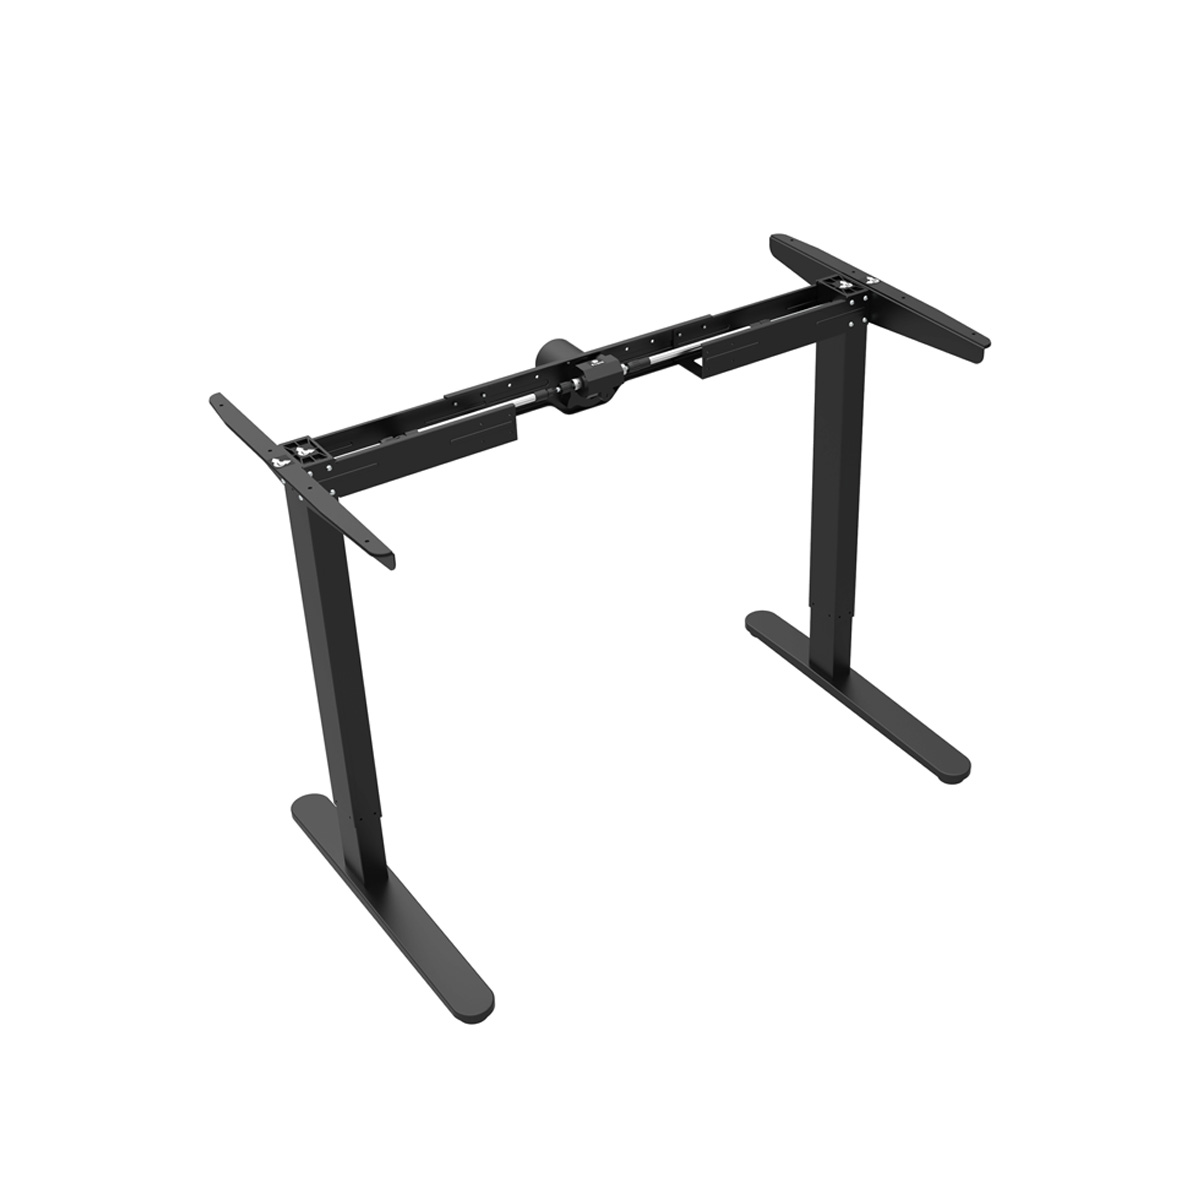 FS0DR24M Motorized Height Adjustable Desk Frame